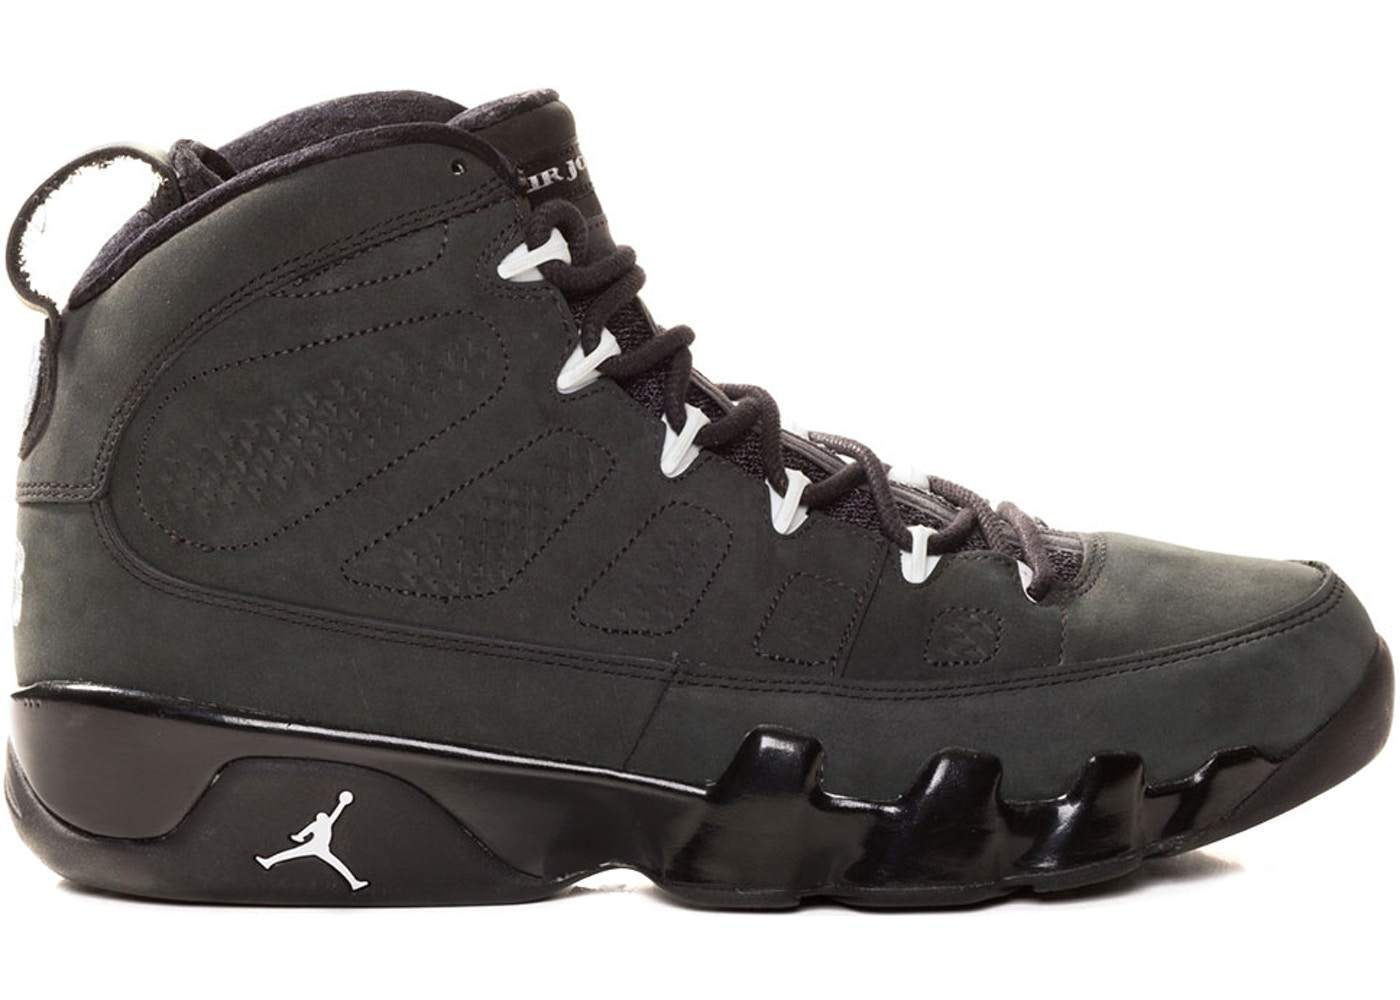 new styles bee8d 0ea8e Air Jordan 9 Shoes - Average Sale Price